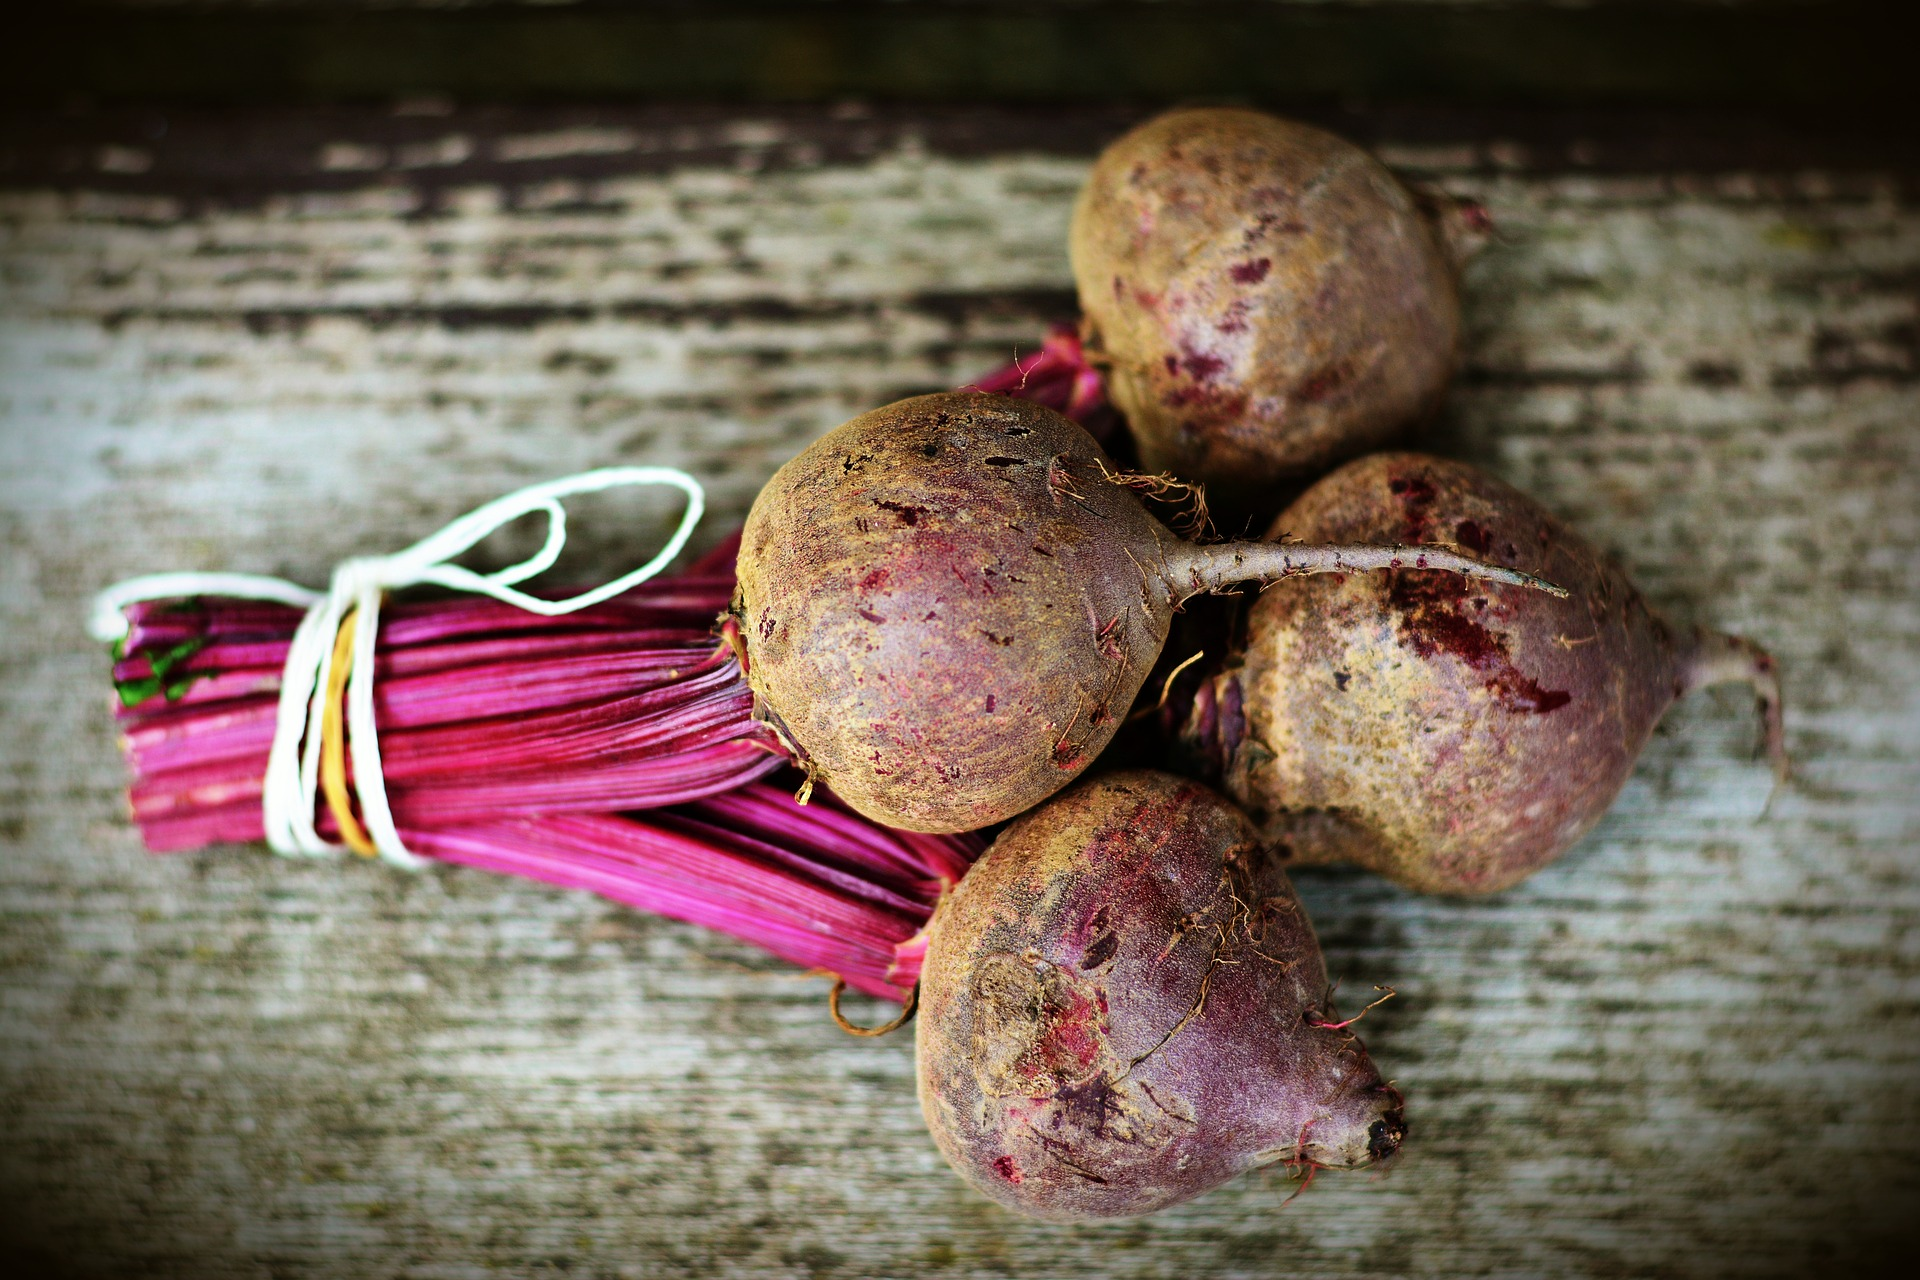 Does beetroot make your pee red